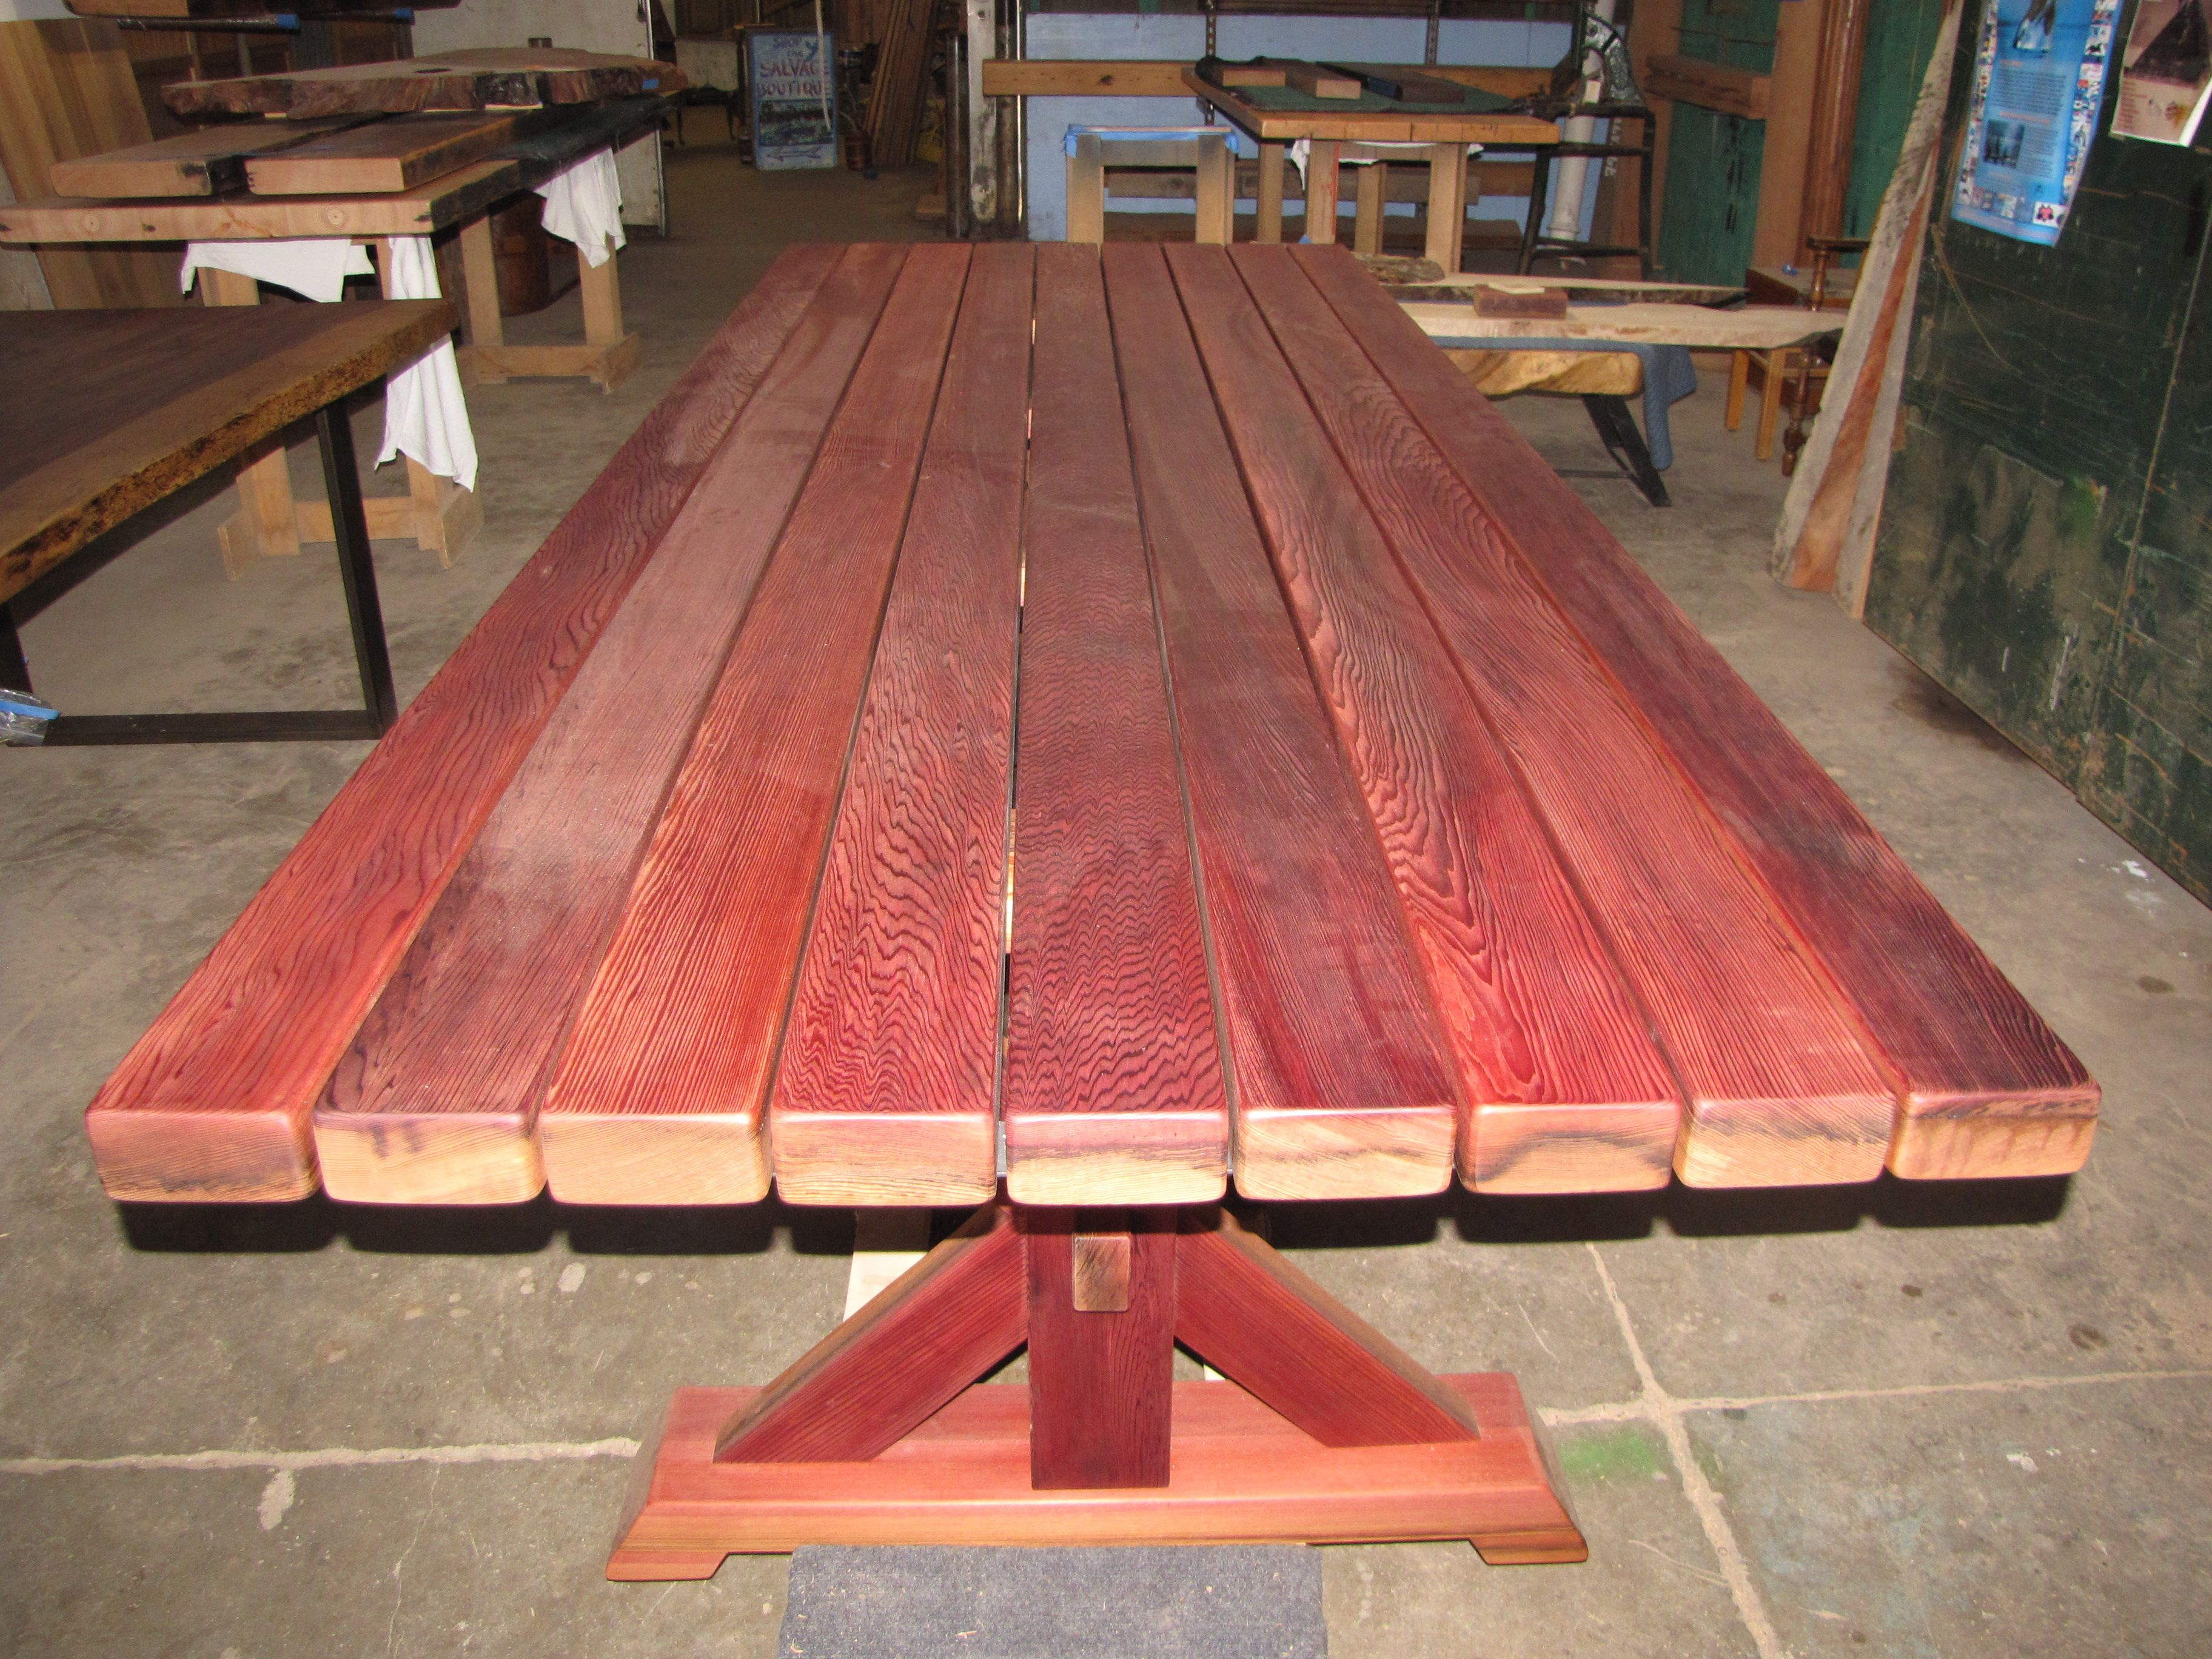 Clear old growth Redwood wine tank staves from Rodney strong